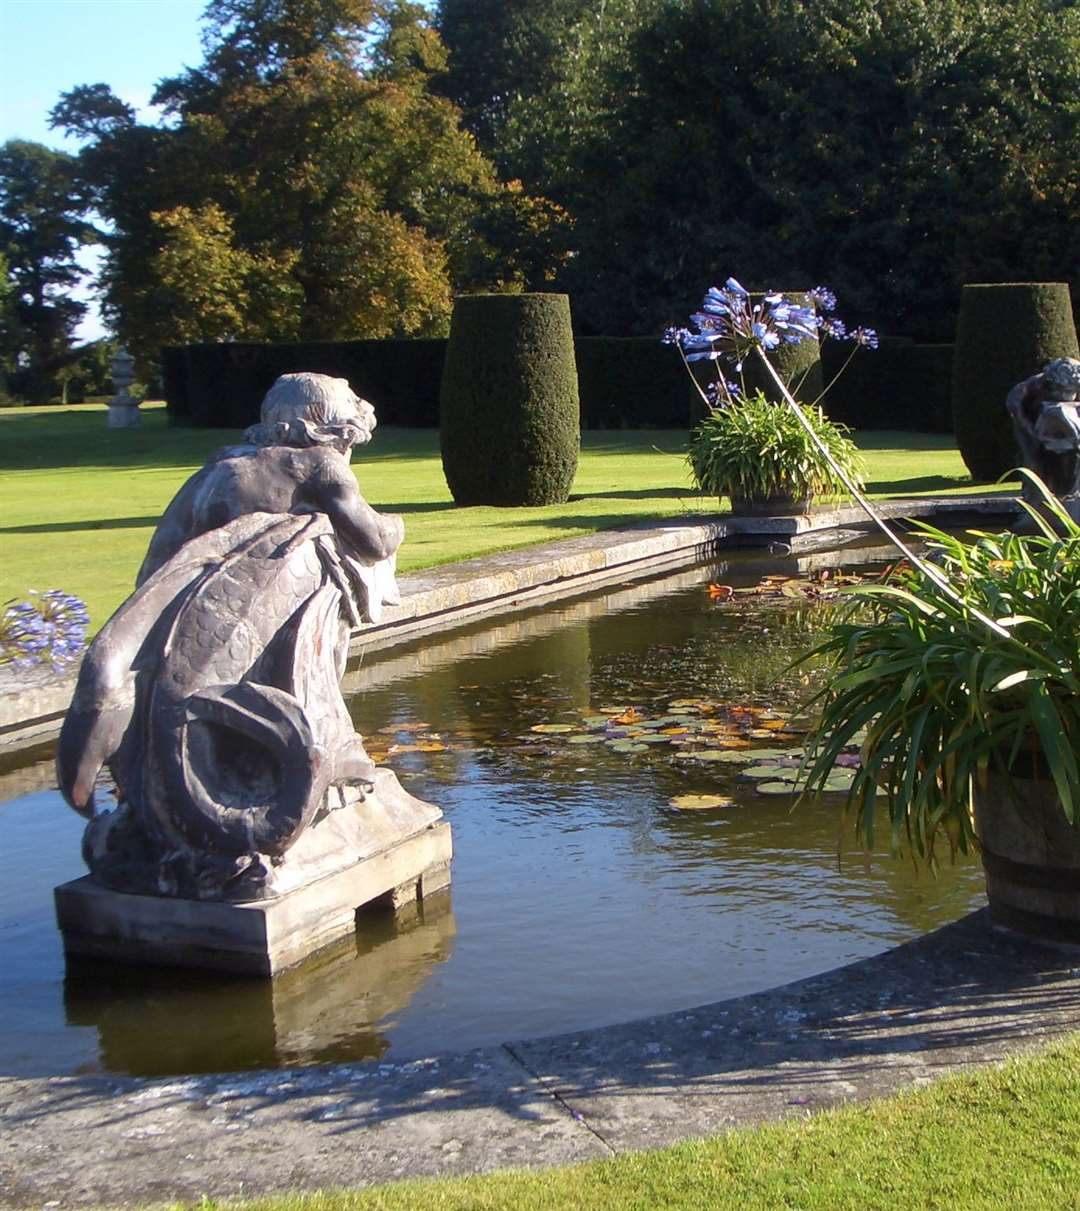 Hole Park Gardens, Rolvenden begins its Autumn Sundays opening this weekend